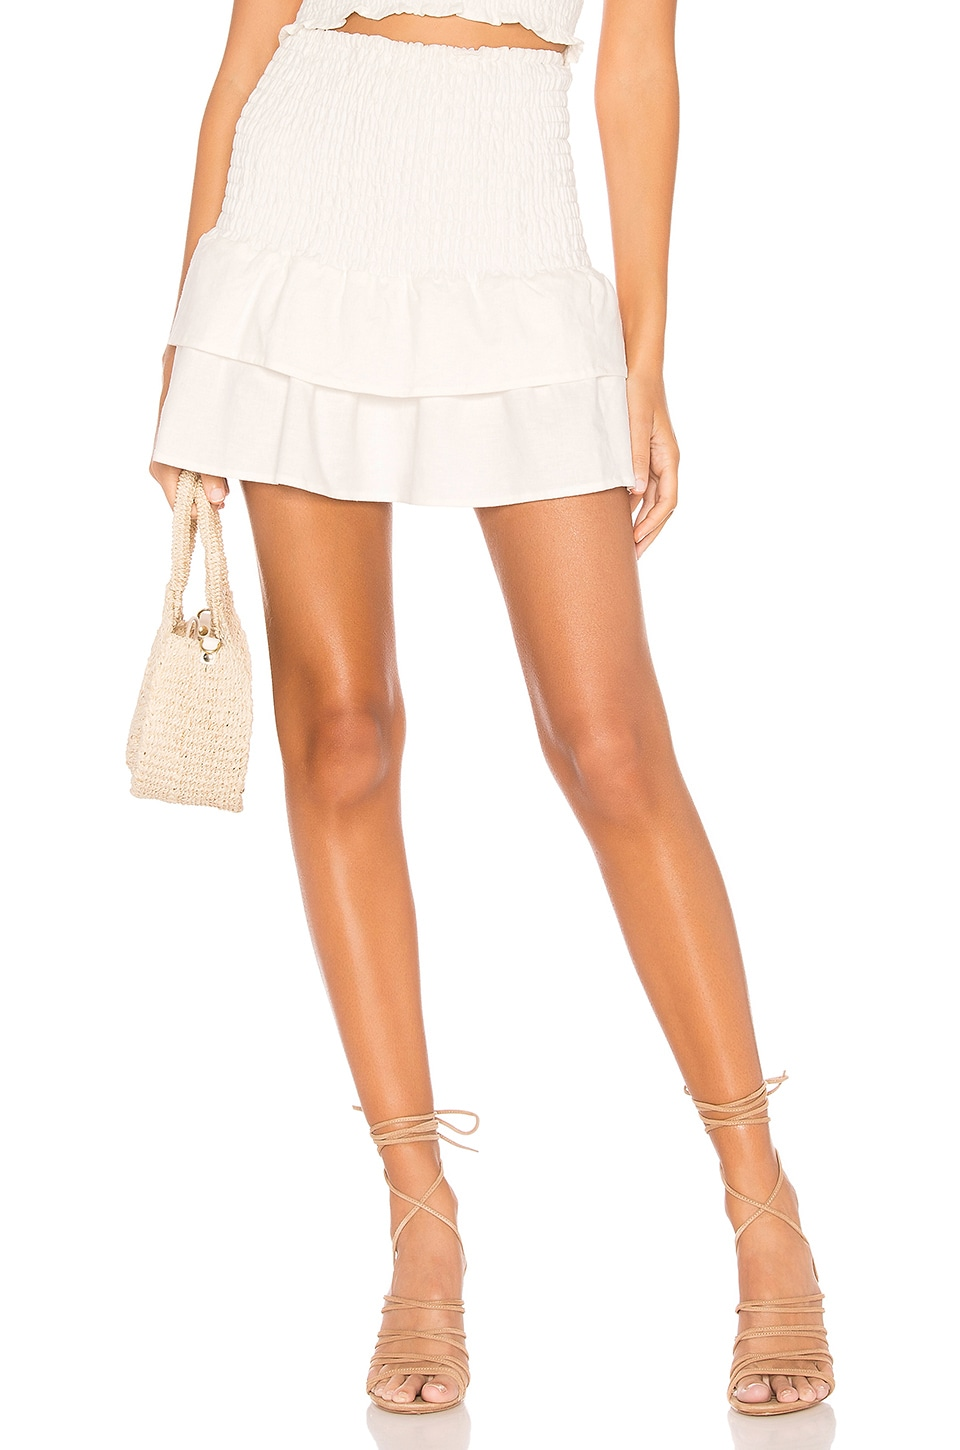 MAJORELLE Peaches Skirt in White